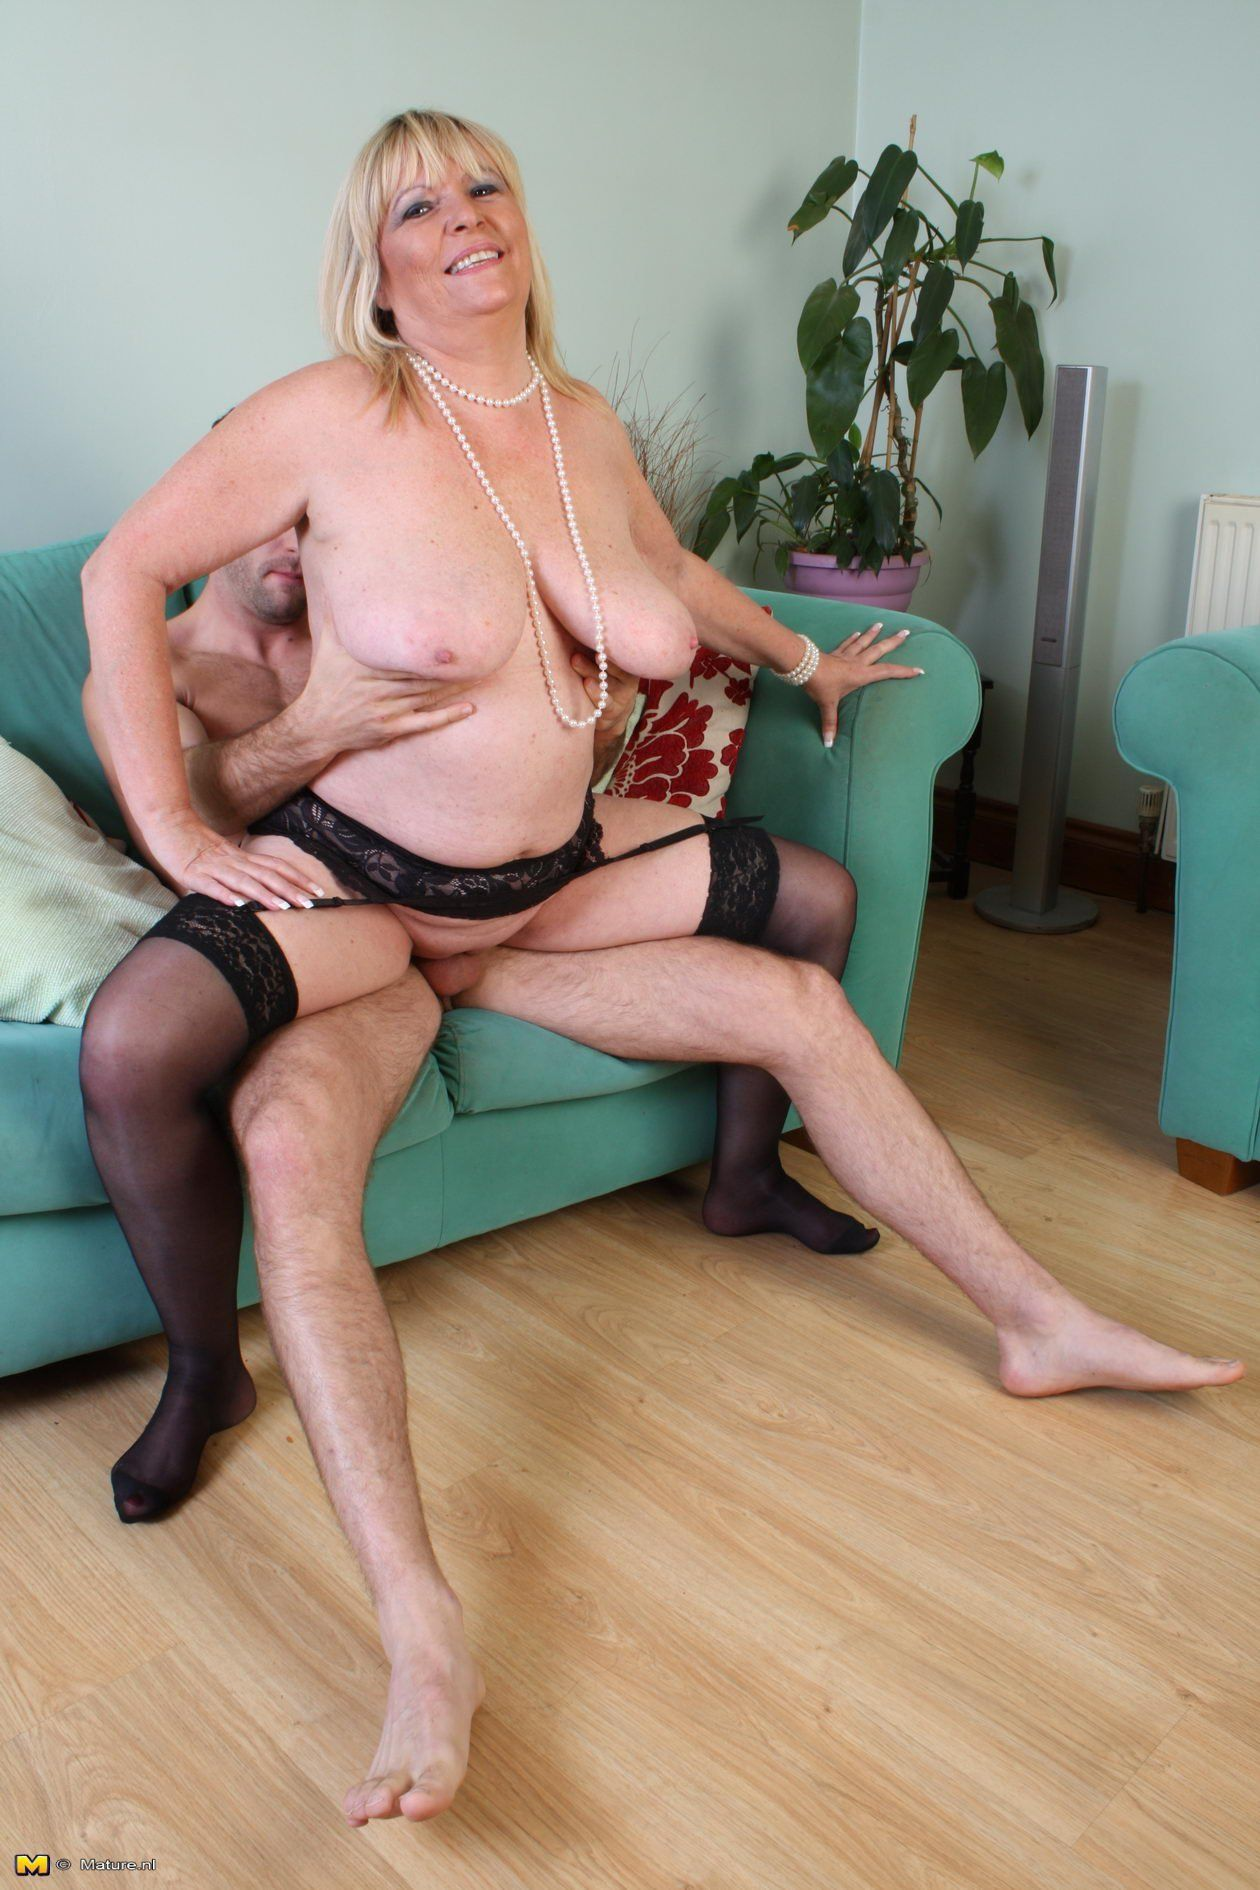 Your mature free erotic uk naked are